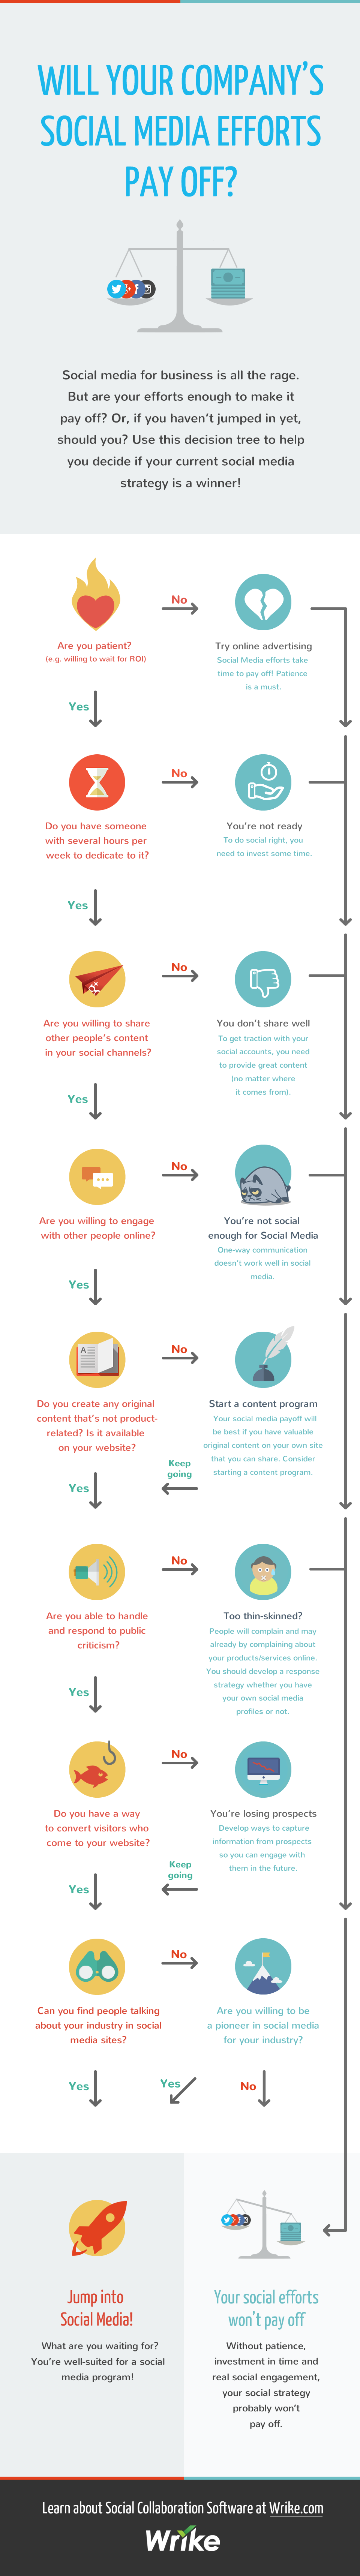 Will your company's social media marketing strategy pay off? #infographic